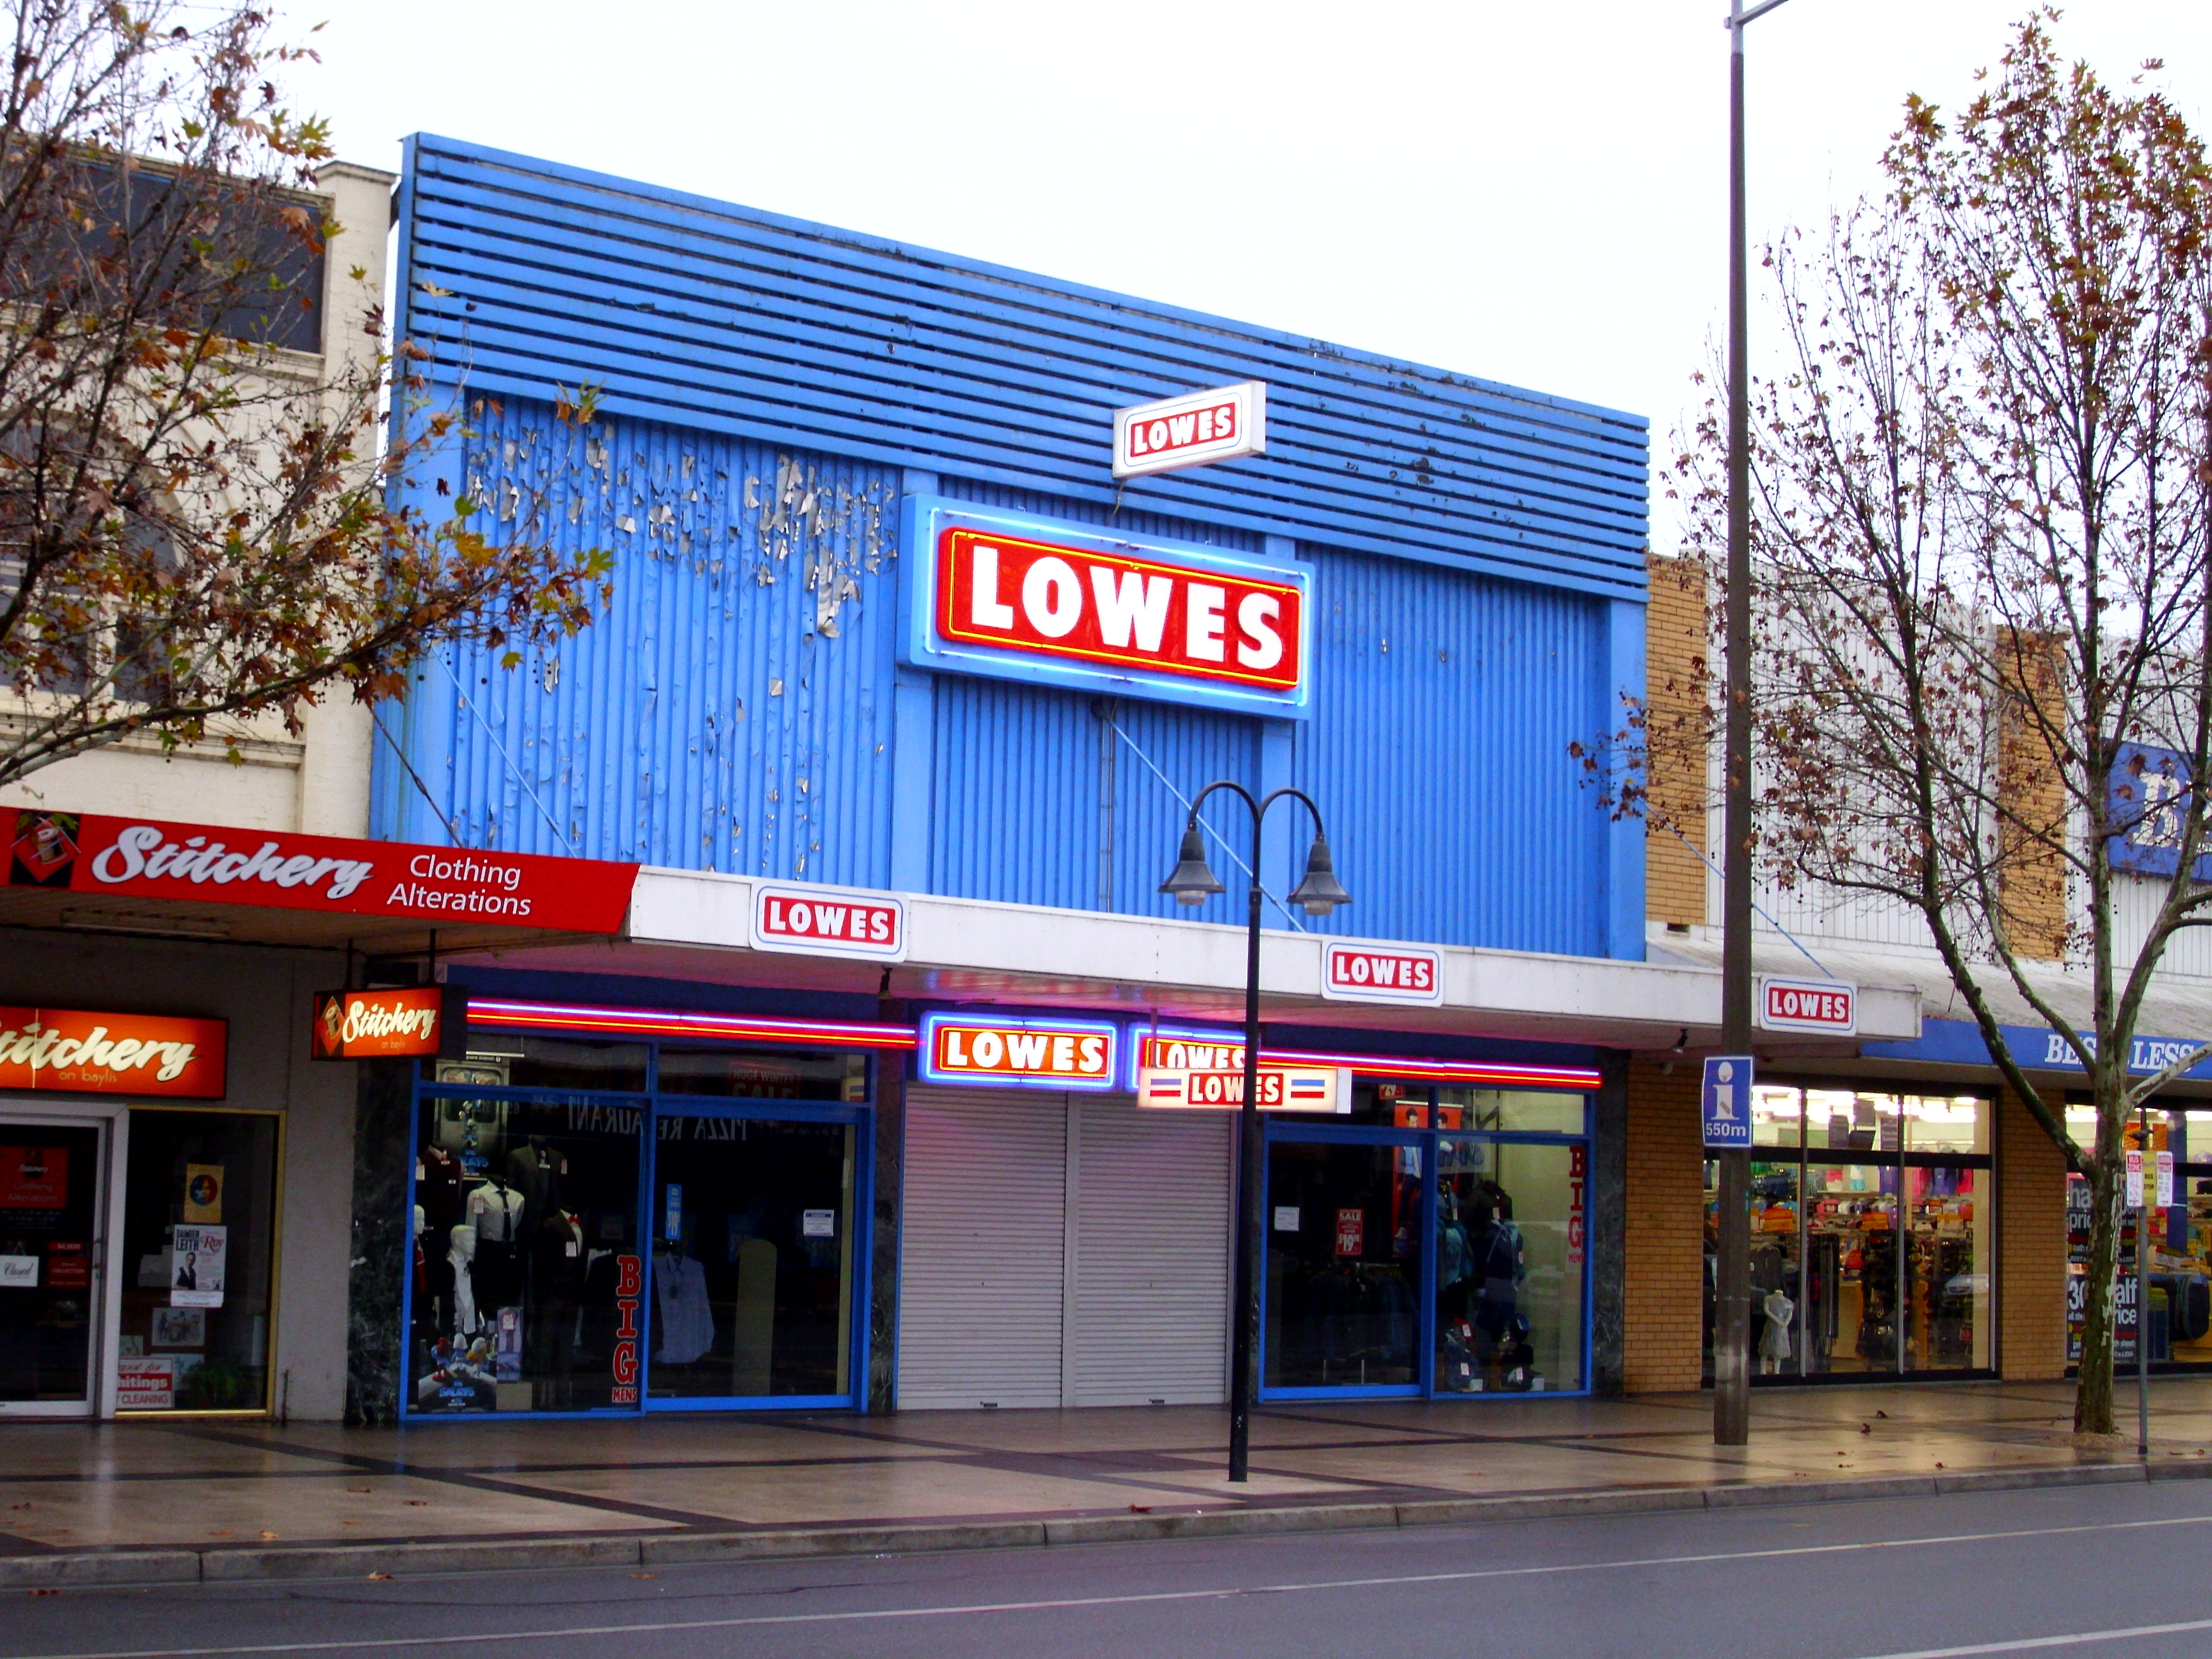 file lowes menswear store in wagga wikimedia commons. Black Bedroom Furniture Sets. Home Design Ideas